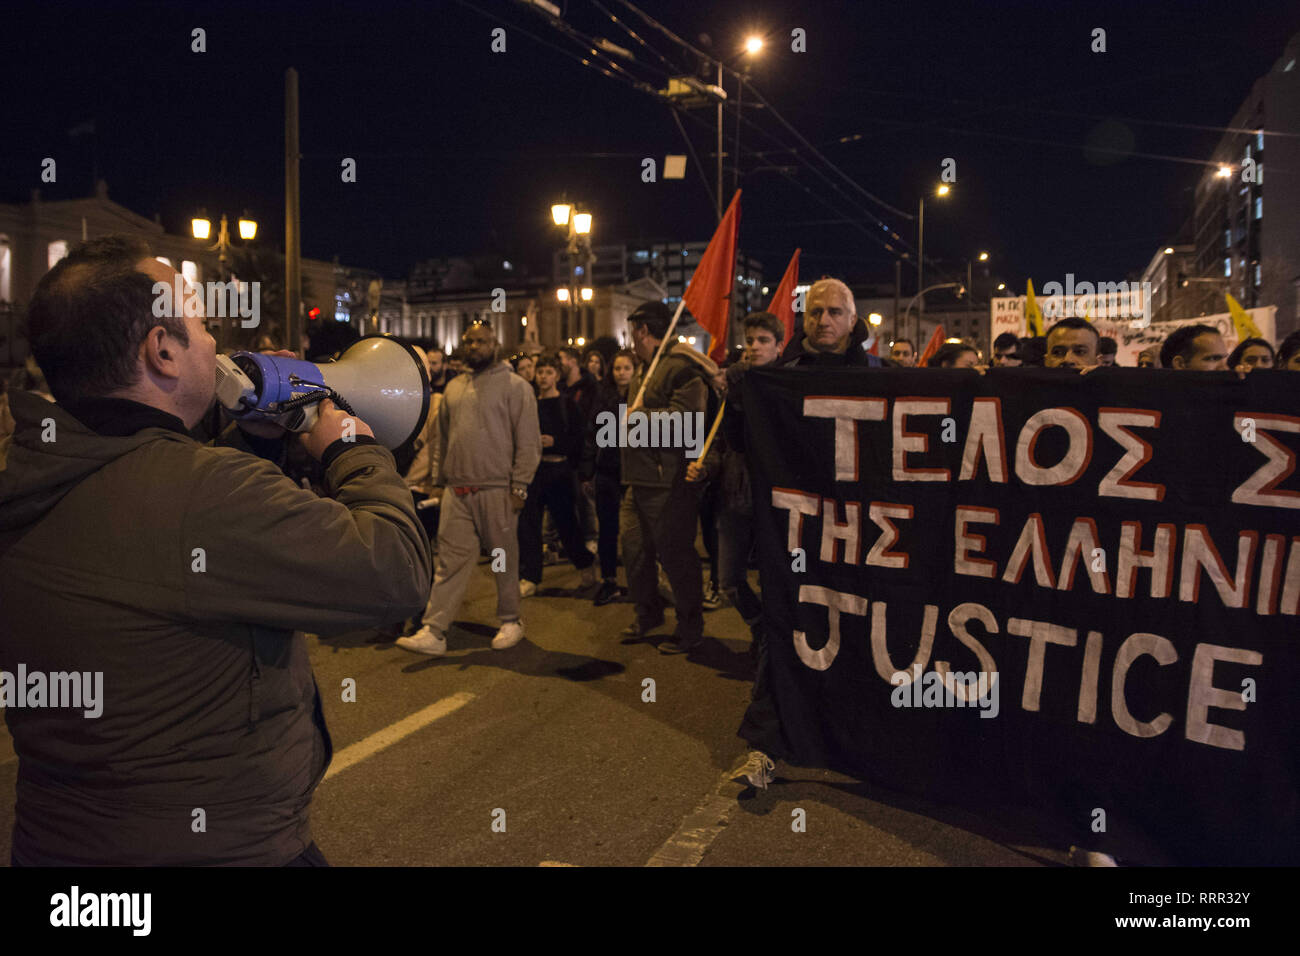 Athens, Greece. 26th Feb, 2019. Leftist and anti-racist organizations protest over Ebuka's death. Ebuca Mama Subek, a 34 year old Nigerian migrant, married and father of two children, died while in custody in the Omonia police station in the center of Athens, a police station with a long history of torture, abuse and unexplained deaths cases. Credit: Nikolas Georgiou/ZUMA Wire/Alamy Live News - Stock Image